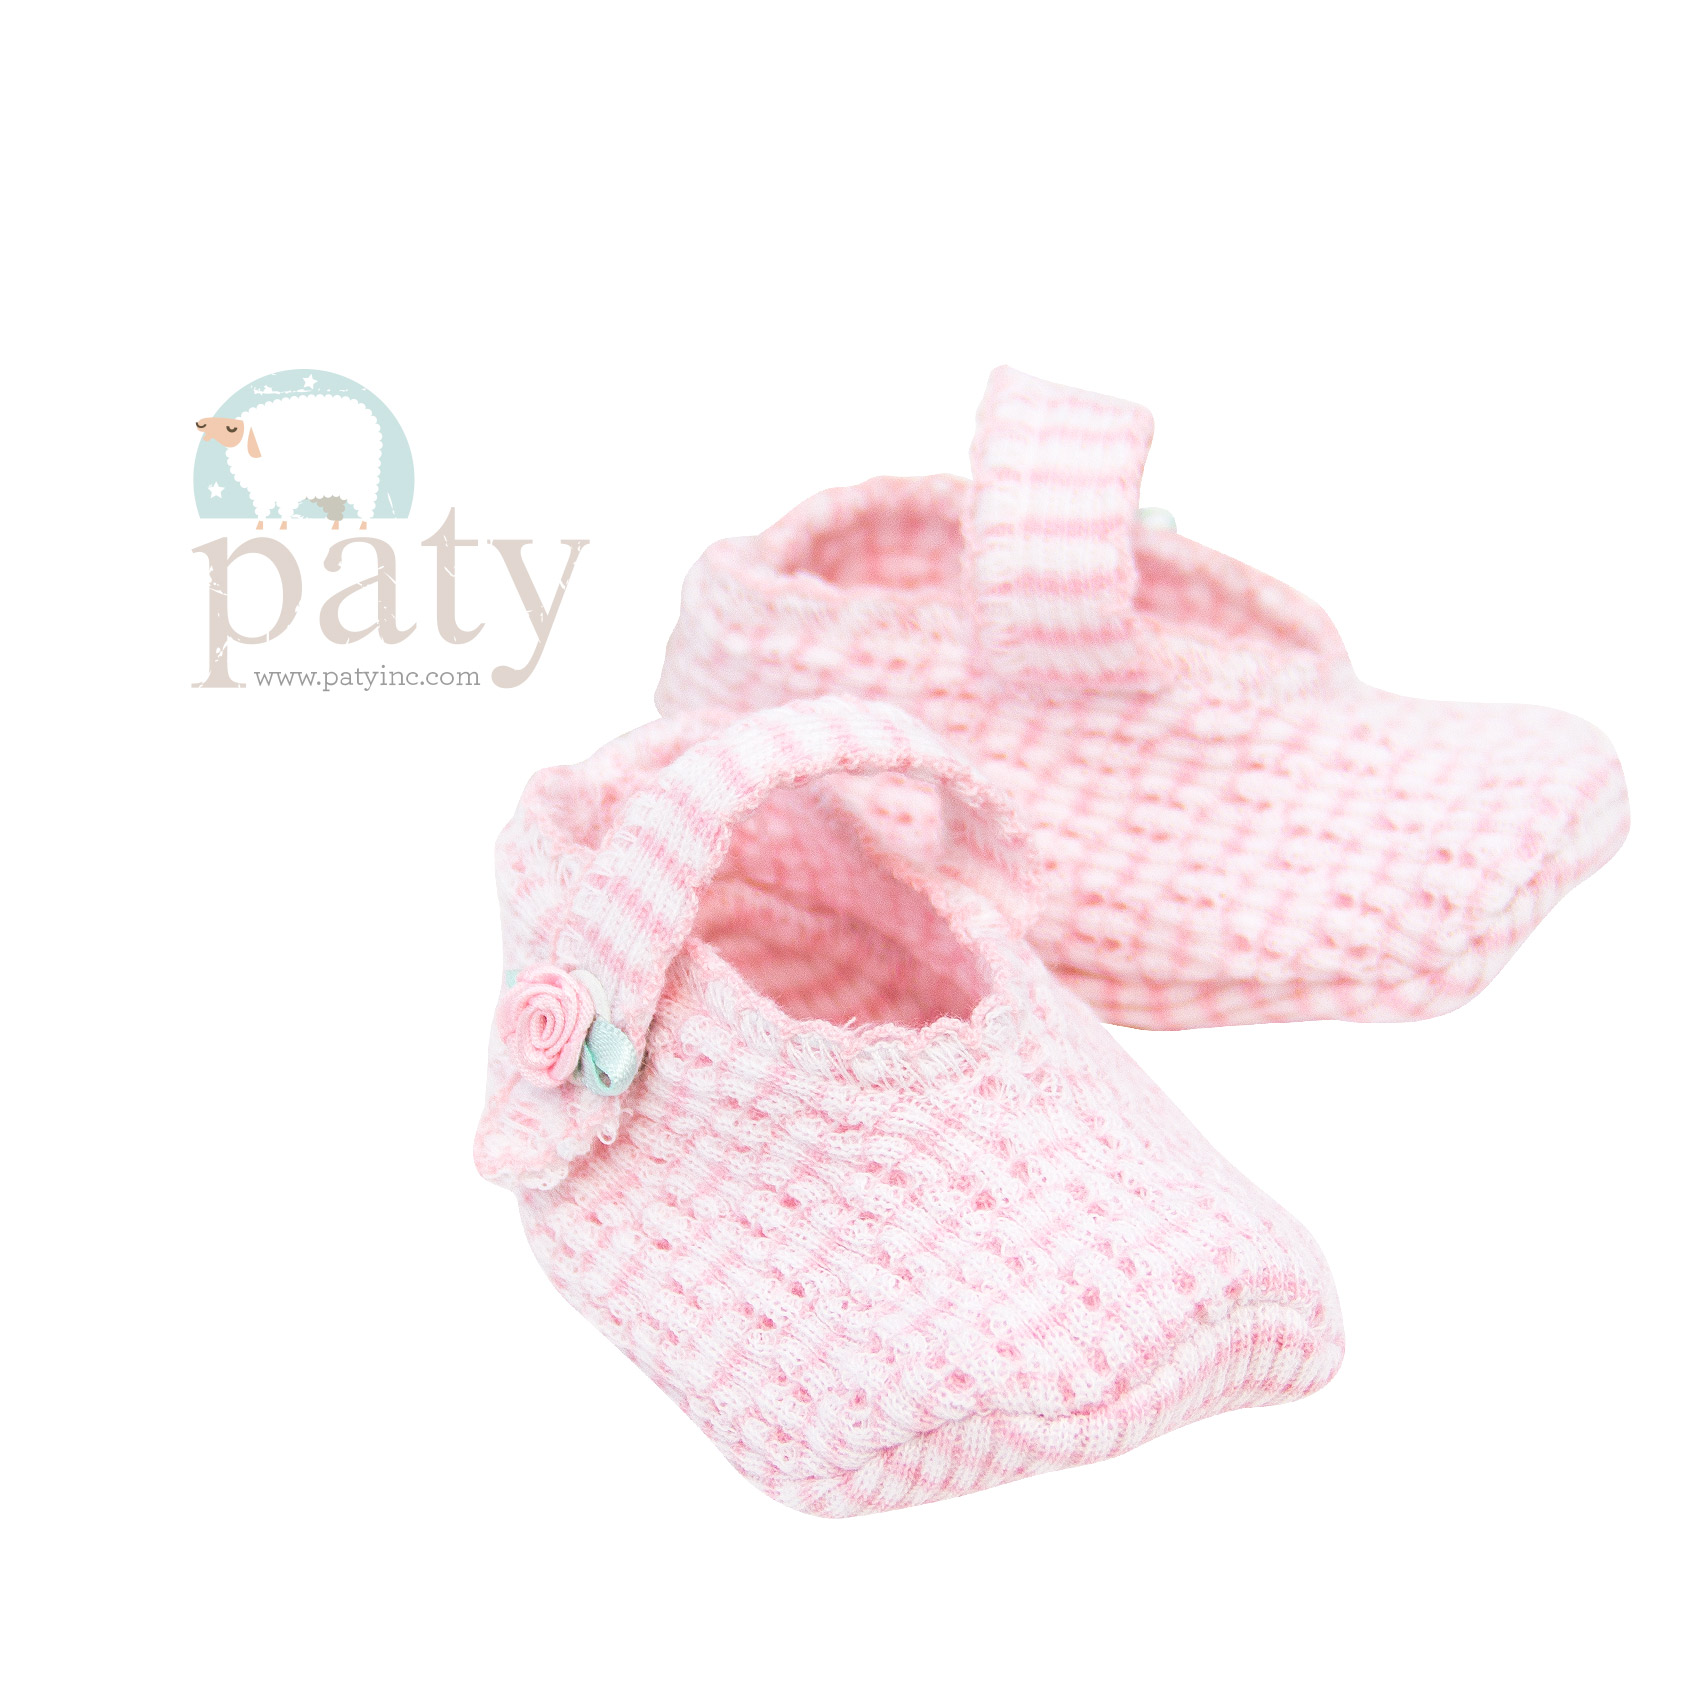 Paty Crib Shoes with Rosettes